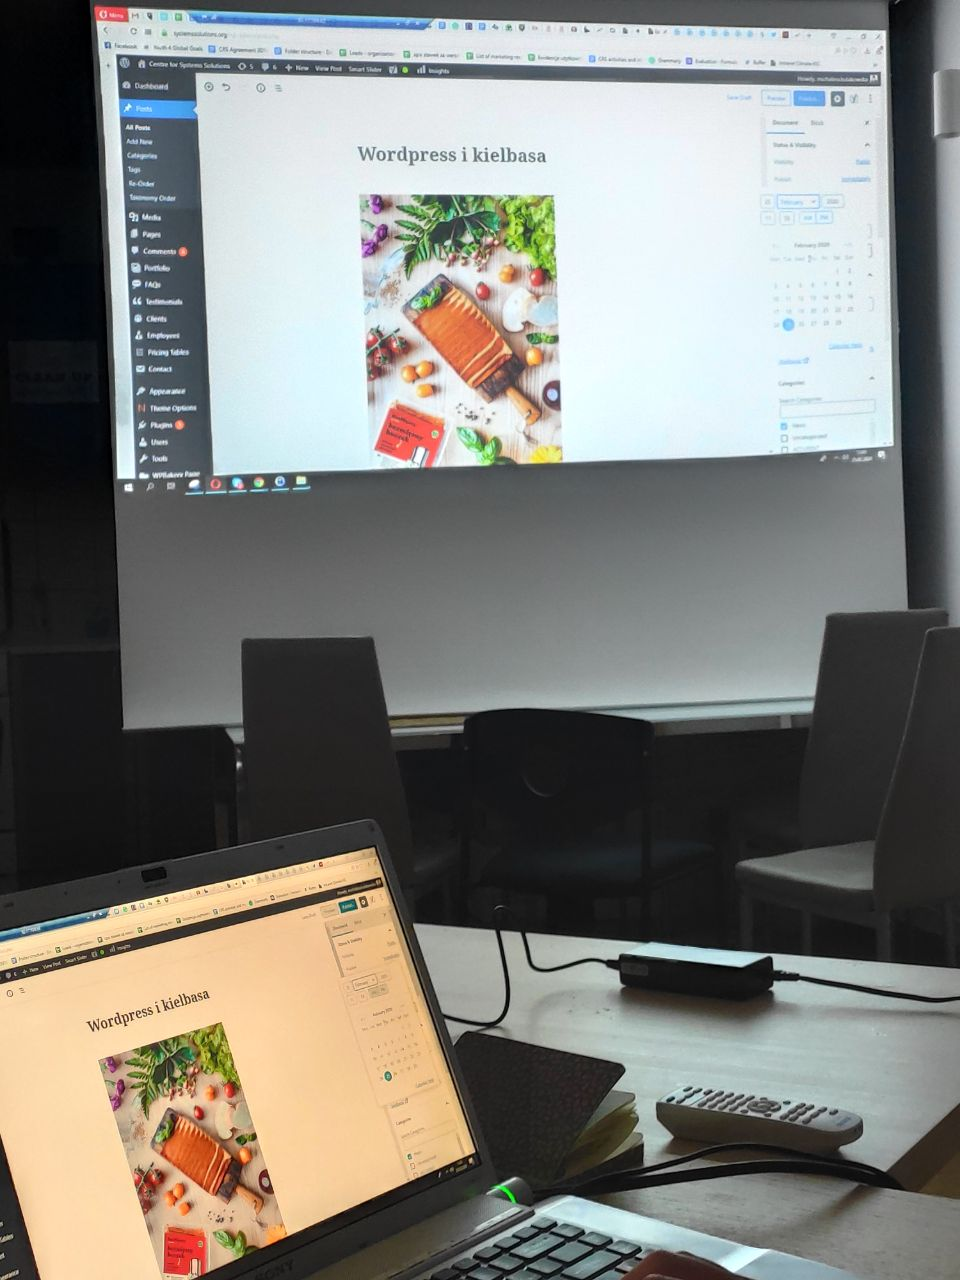 Share your competences – internal workshop on WORDPRESS